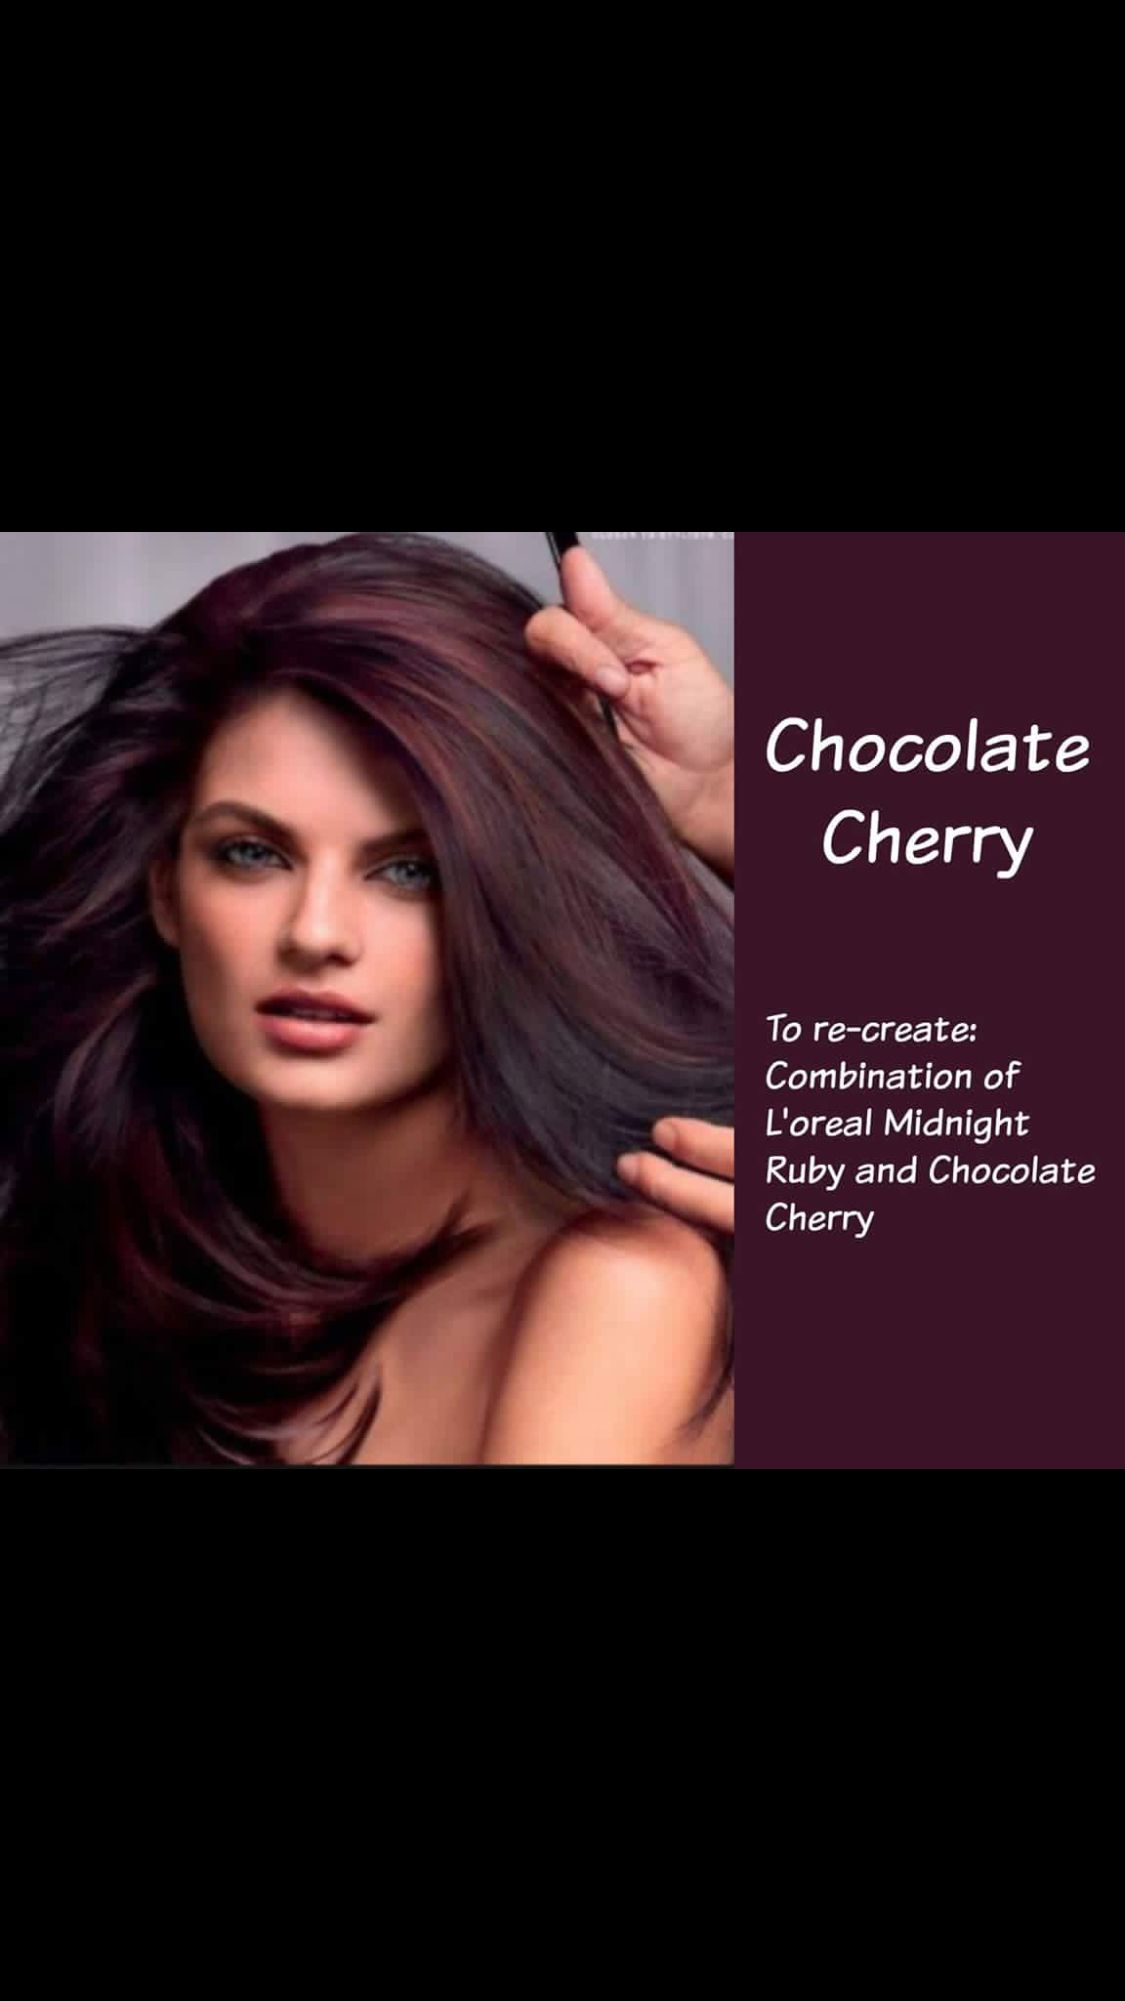 Chocolate Cherry | Hair Dos | Pinterest | Hair dos